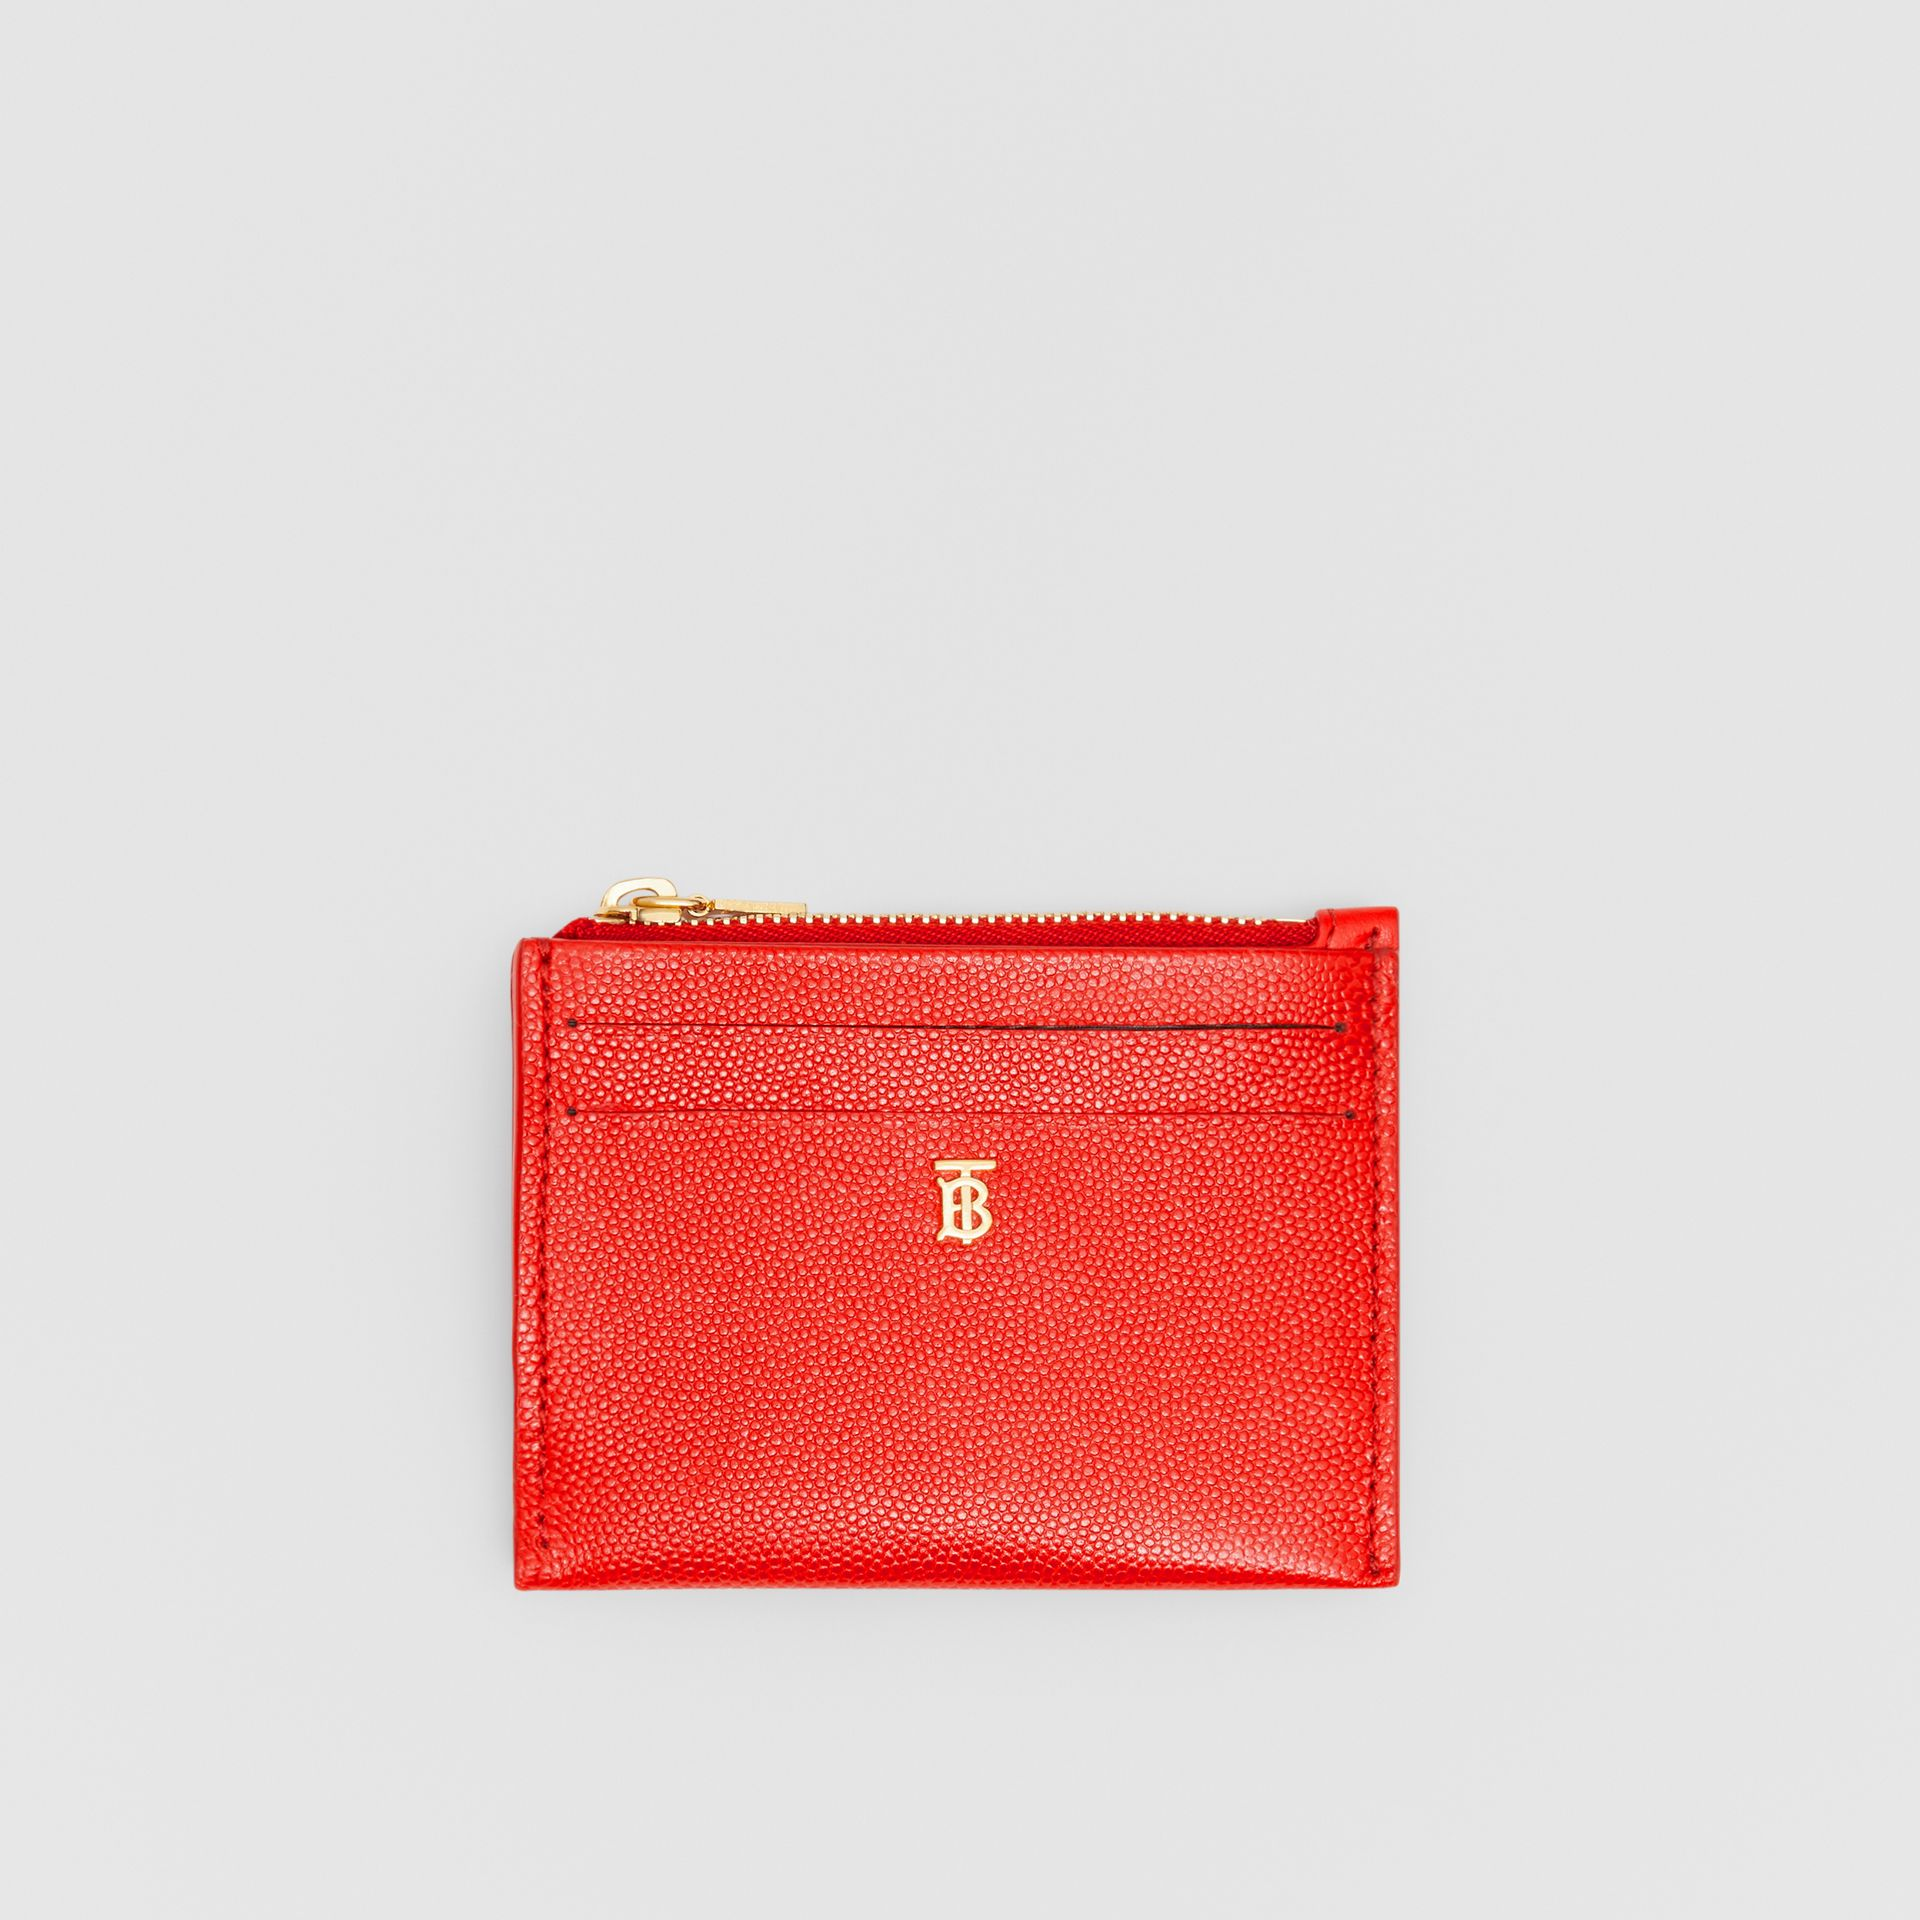 Monogram Motif Grainy Leather Zip Card Case in Bright Red - Women | Burberry Australia - gallery image 0